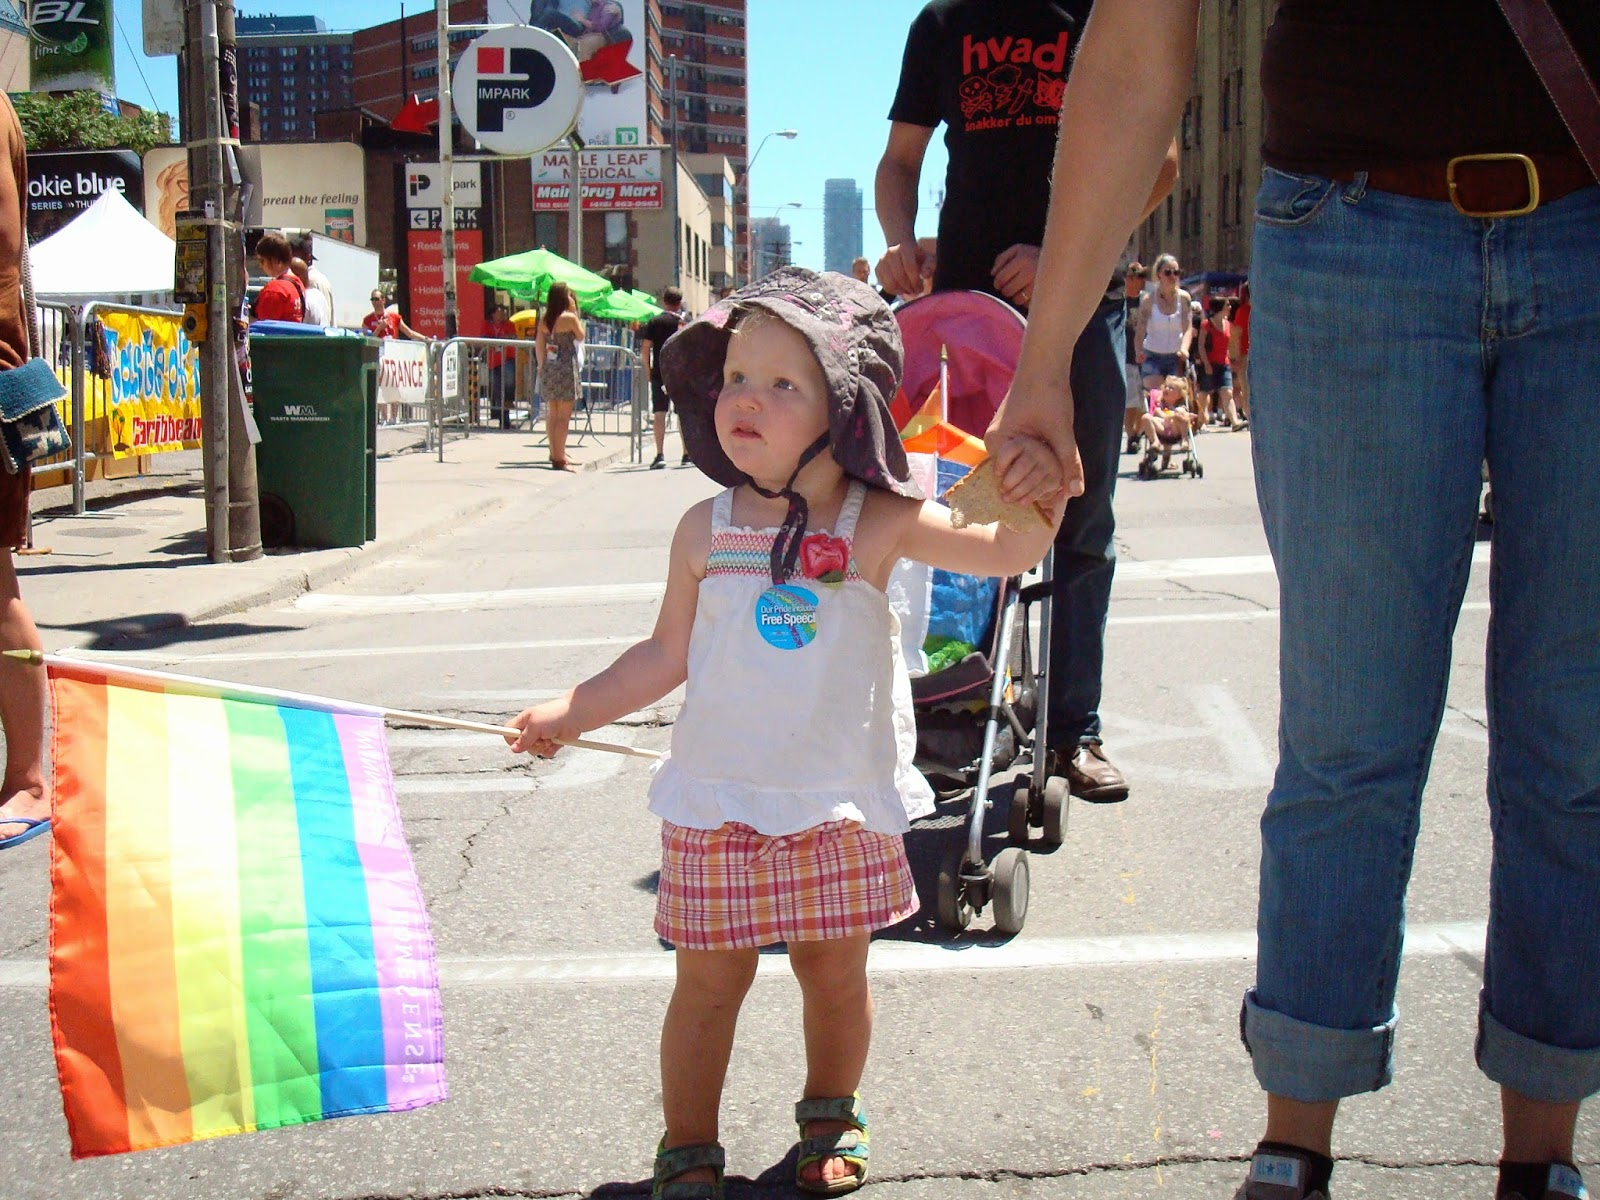 Pride Toronto Celebration along Church Street in Toronto, Ontario, Canada, Family, Children, rainbows, fashion, style, culture, gay, lesbian, flag, Melanie_Ps, The Purple Scarf